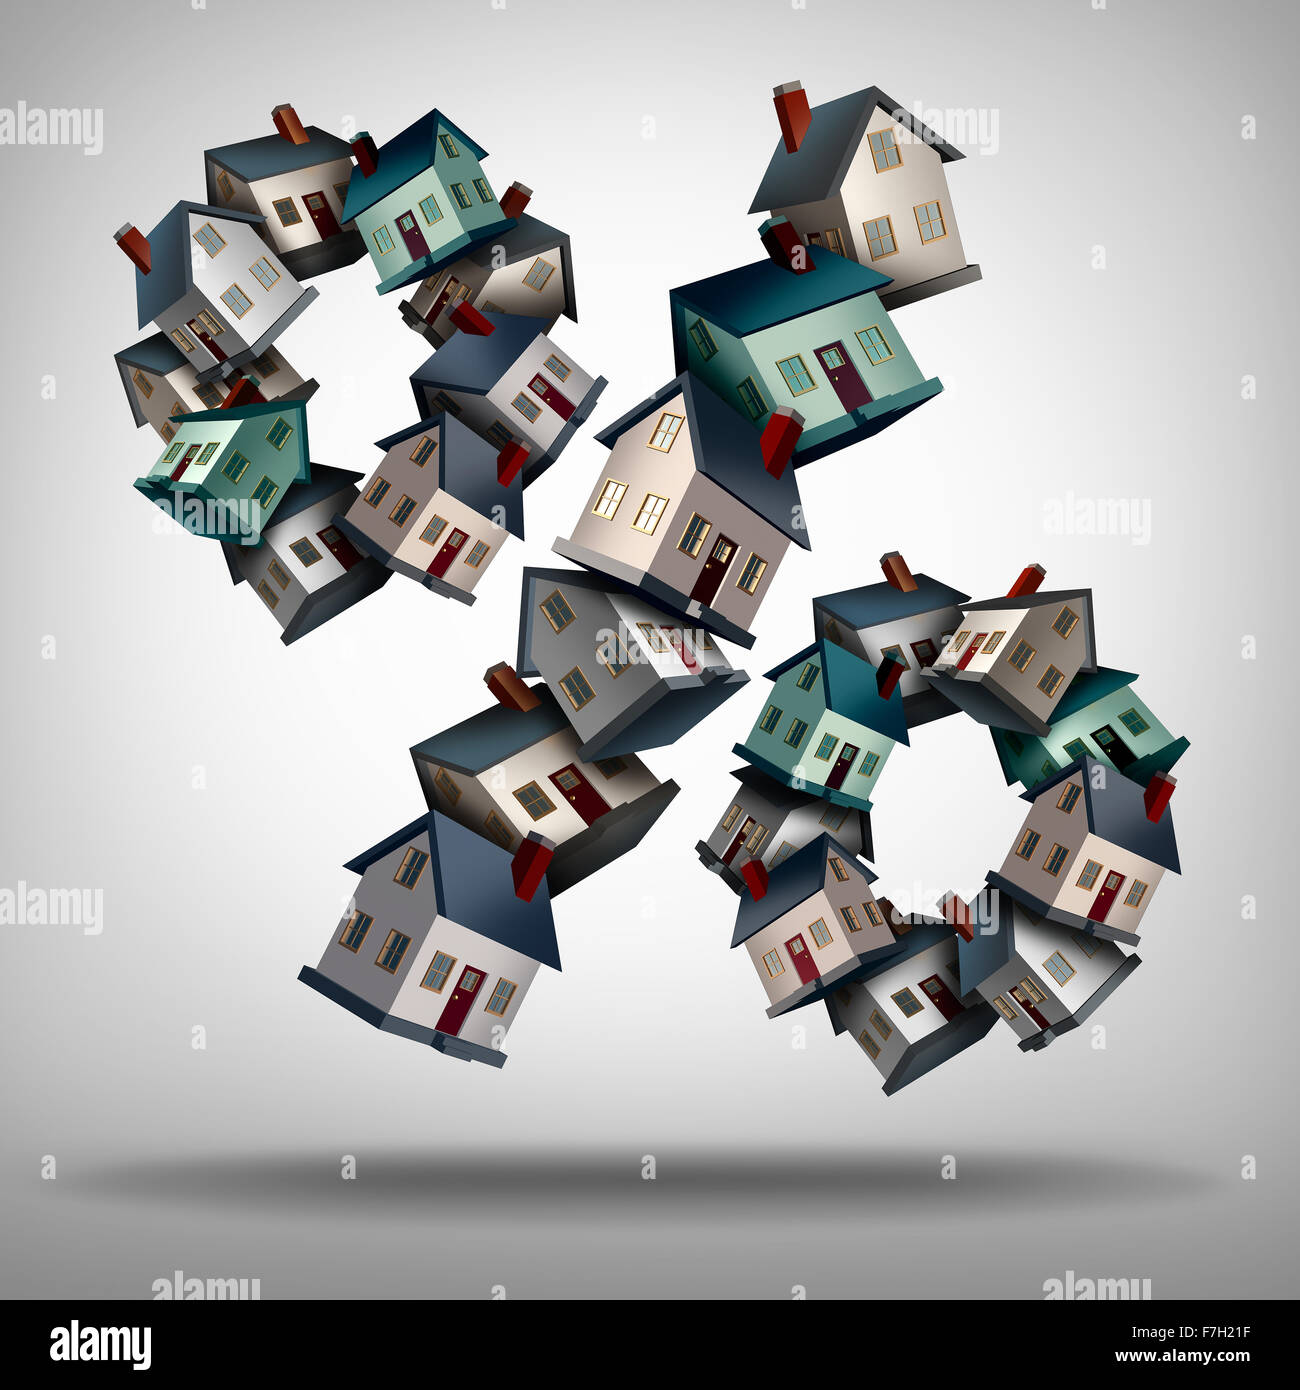 Home mortgage rates concept and interest rate symbol as a group of homes or houses shaped as a percentage sign for - Stock Image